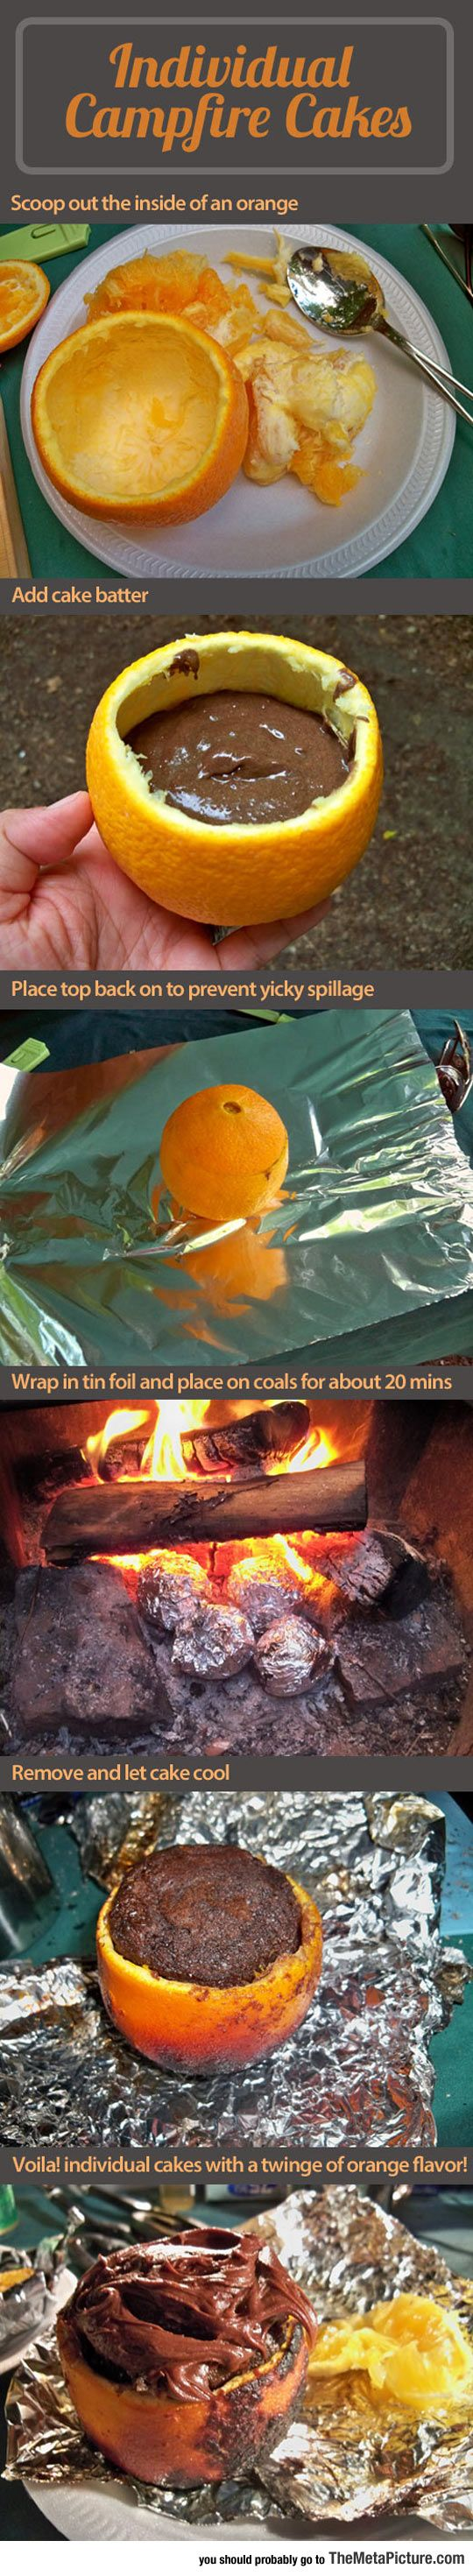 Oranges, Fire And Pure Deliciousness - The Meta Picture https://uk.pinterest.com/uksportoutdoors/backpack-accessories/pins/